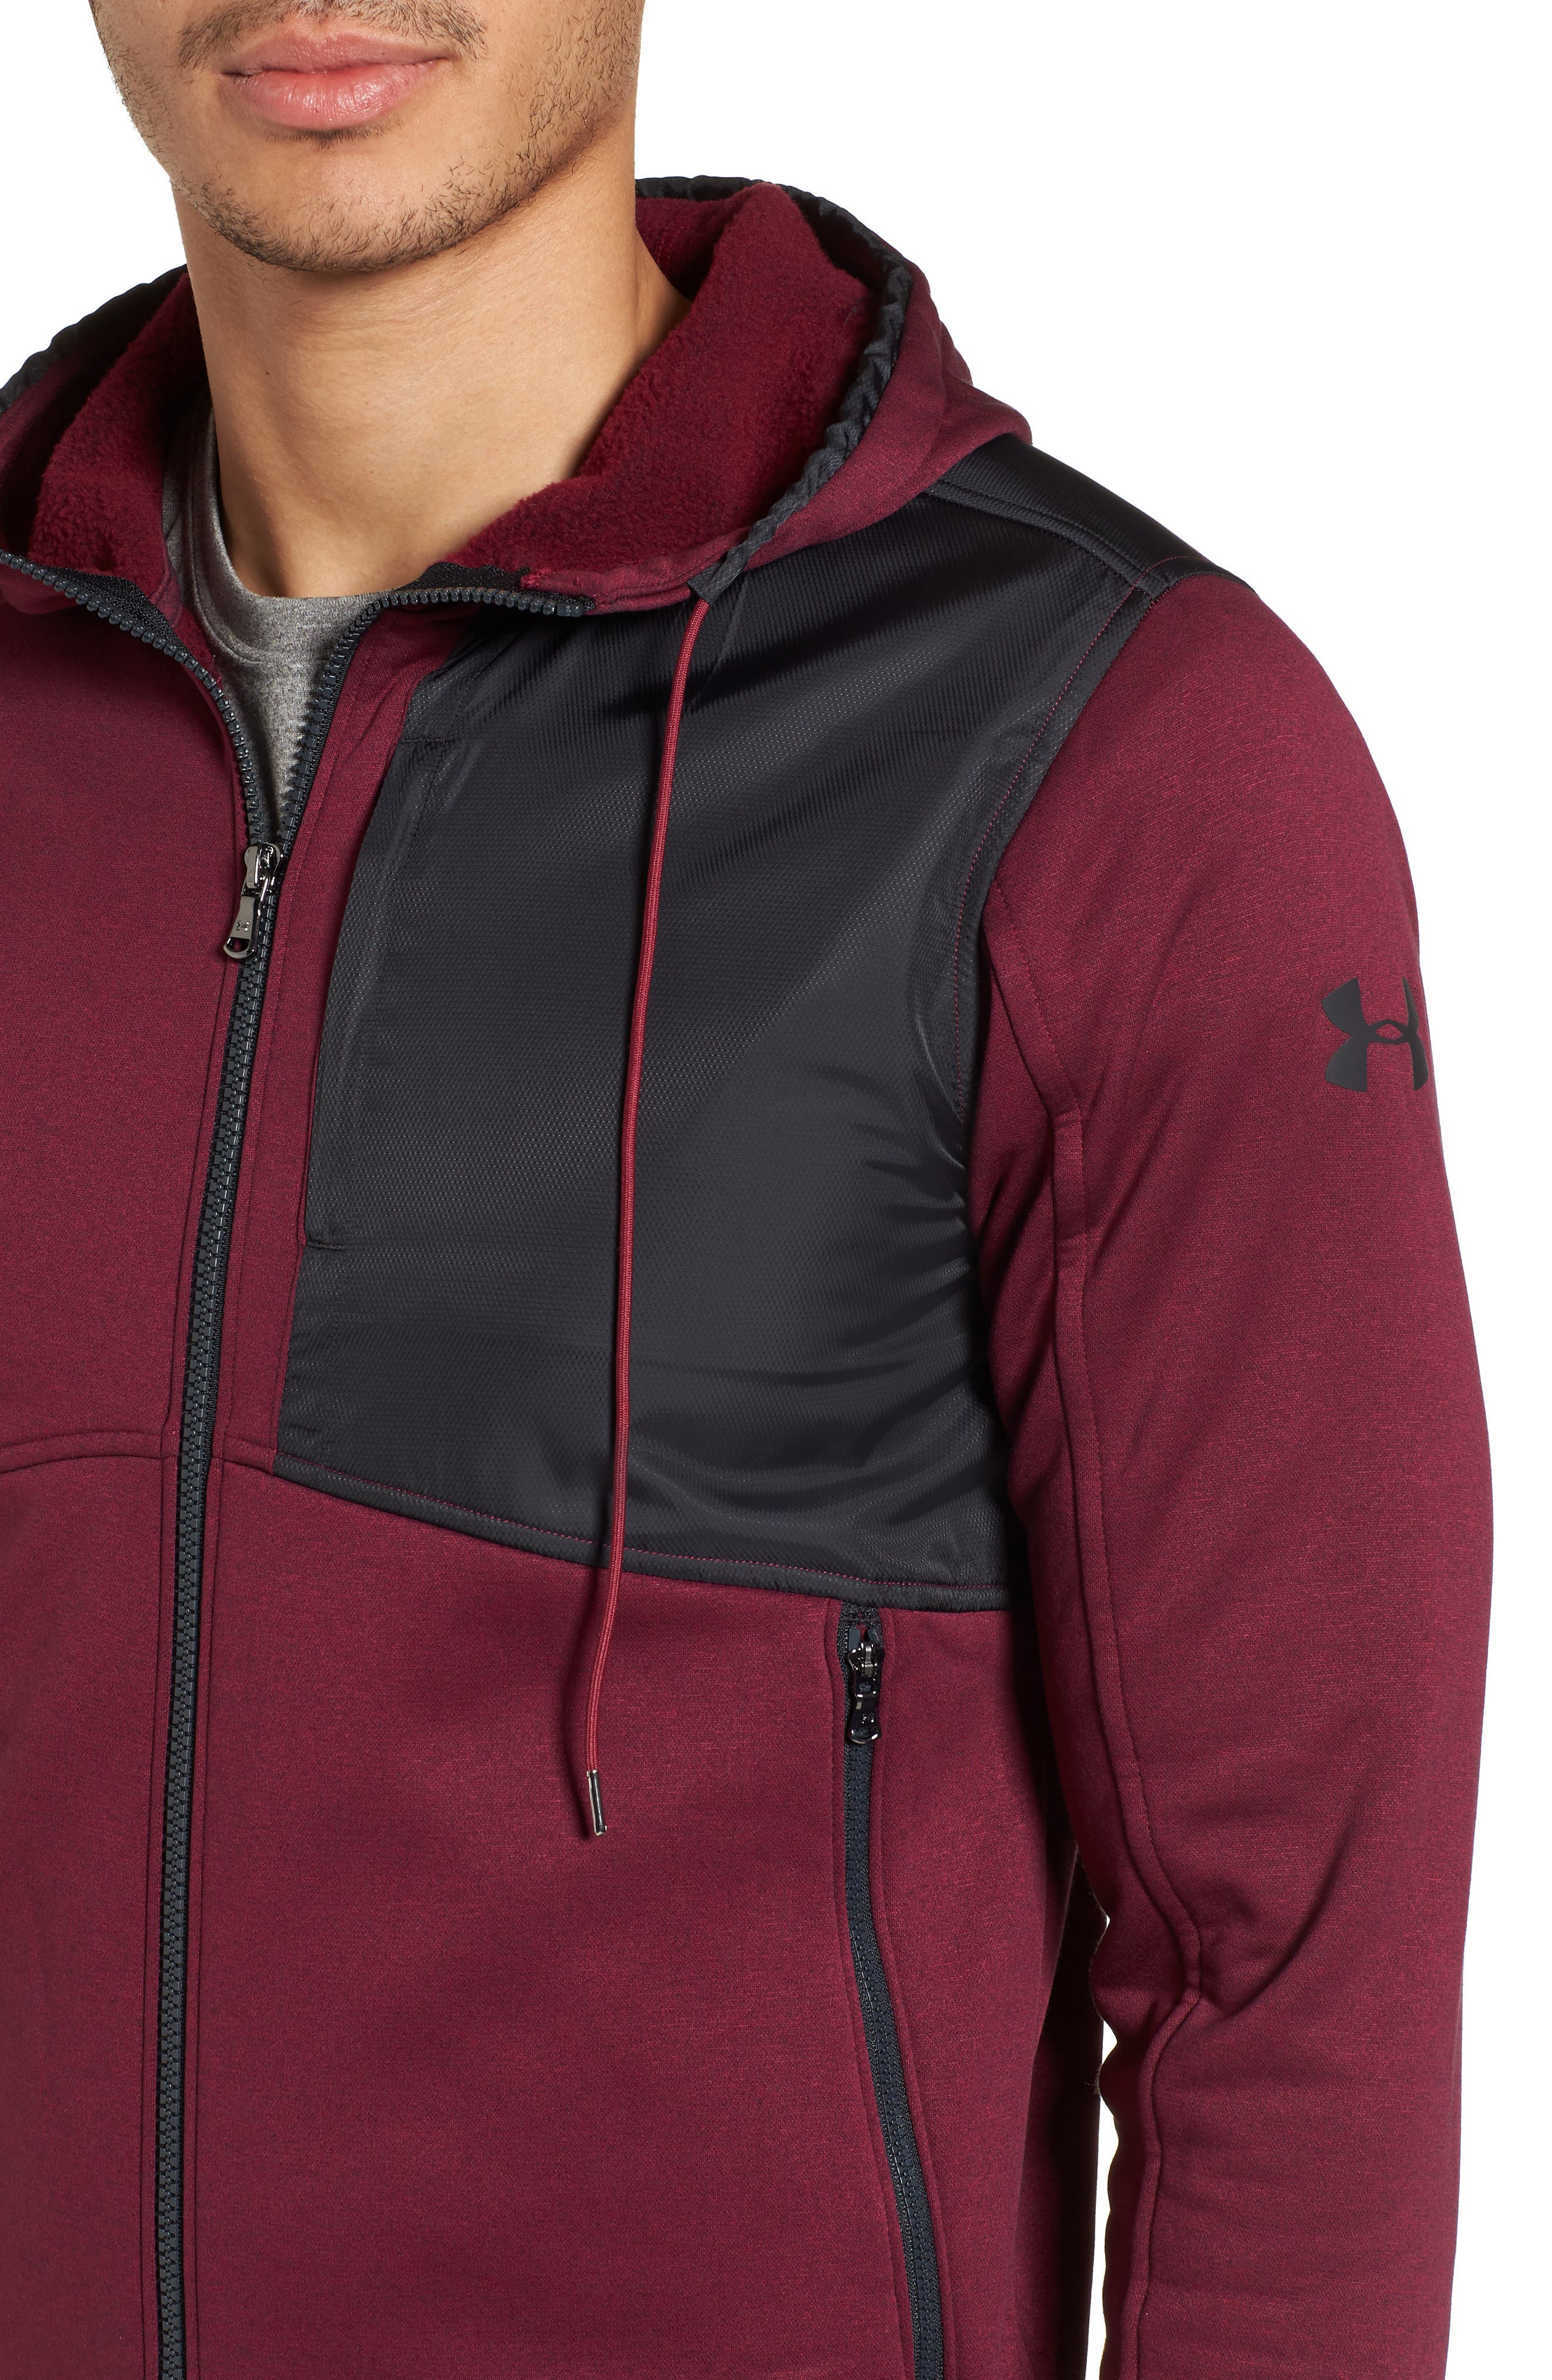 Courtside Stealth Zip Hoodie,                             Alternate thumbnail 4, color,                             Black Currant / Black